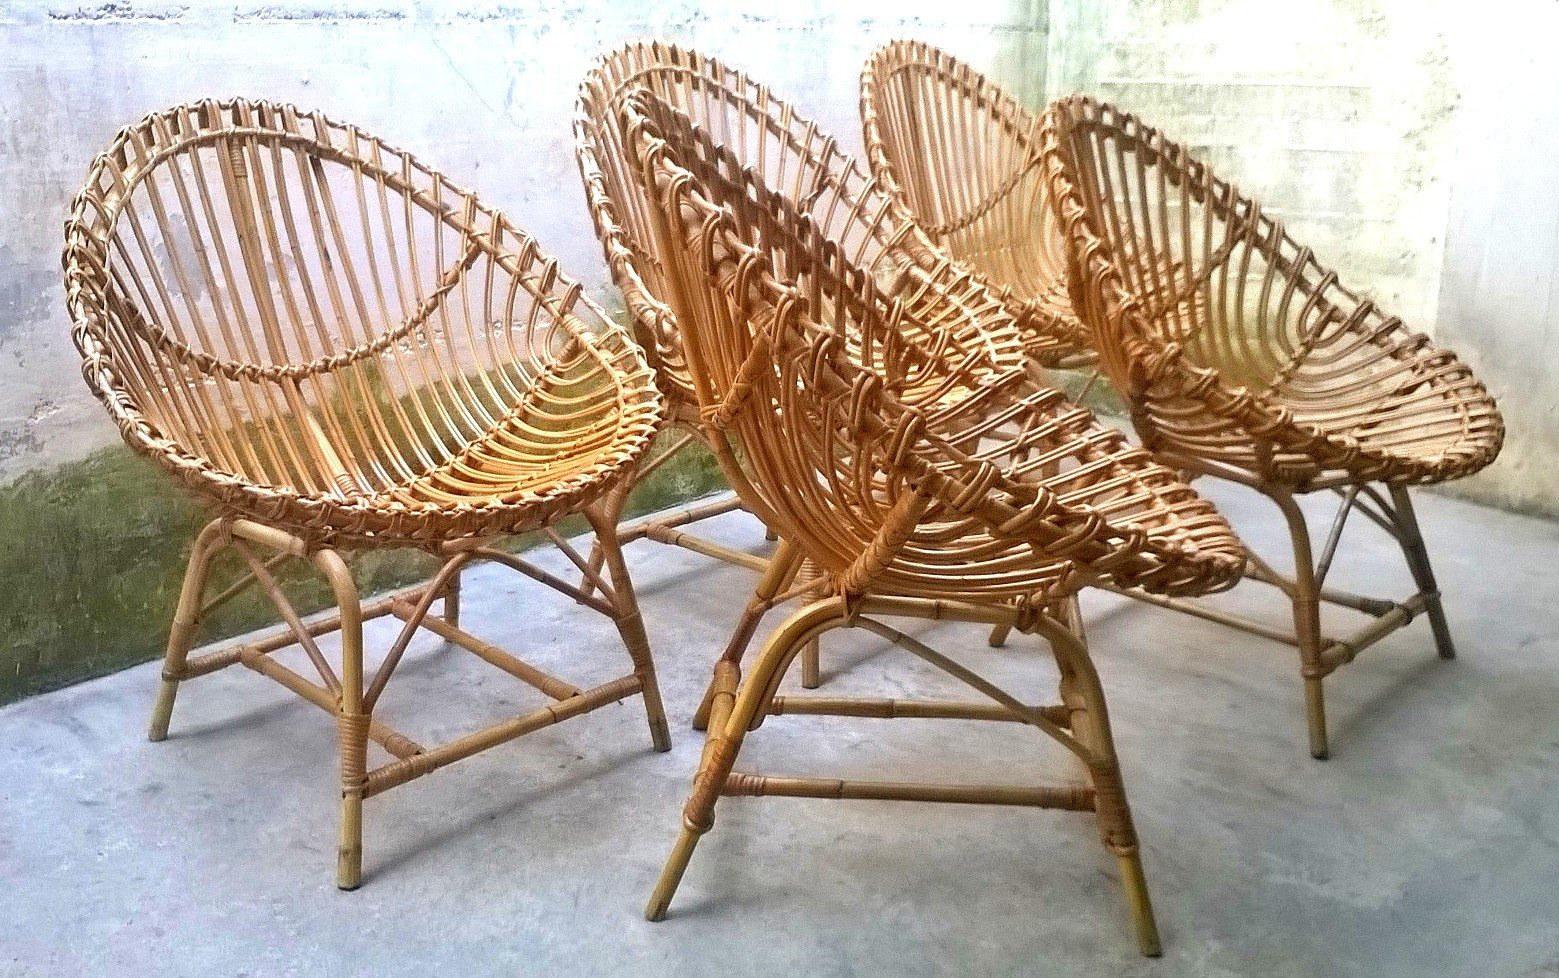 Egg Shaped Wicker Chair Italian Rattan Egg Shaped Chairs 1950s Set Of 5 For Sale